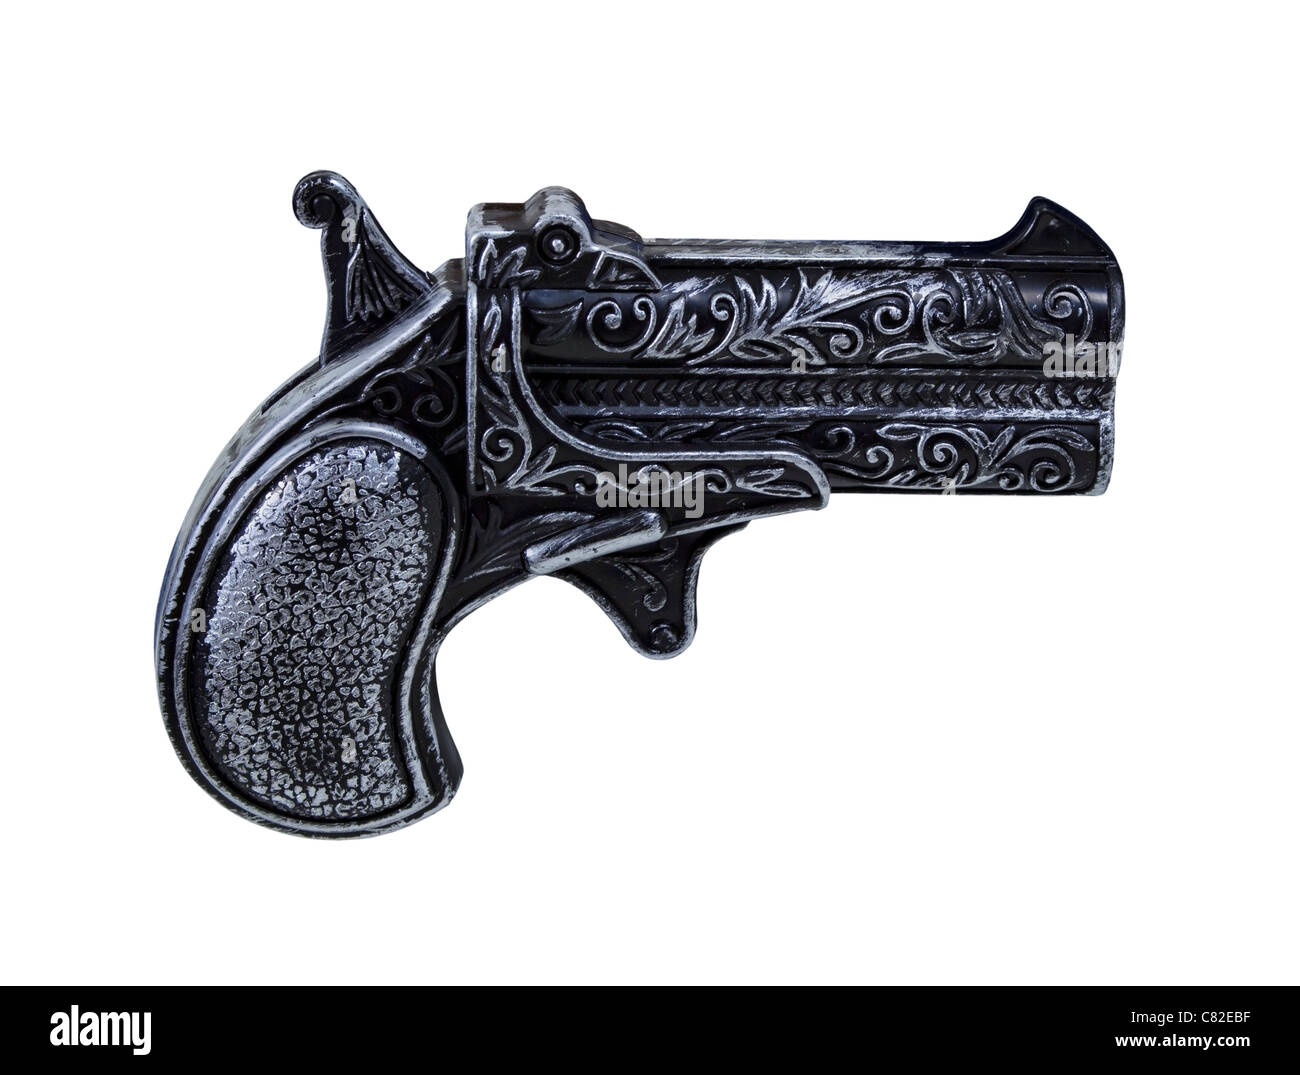 Small black toy pistol gun with silver highlights - path included - Stock Image